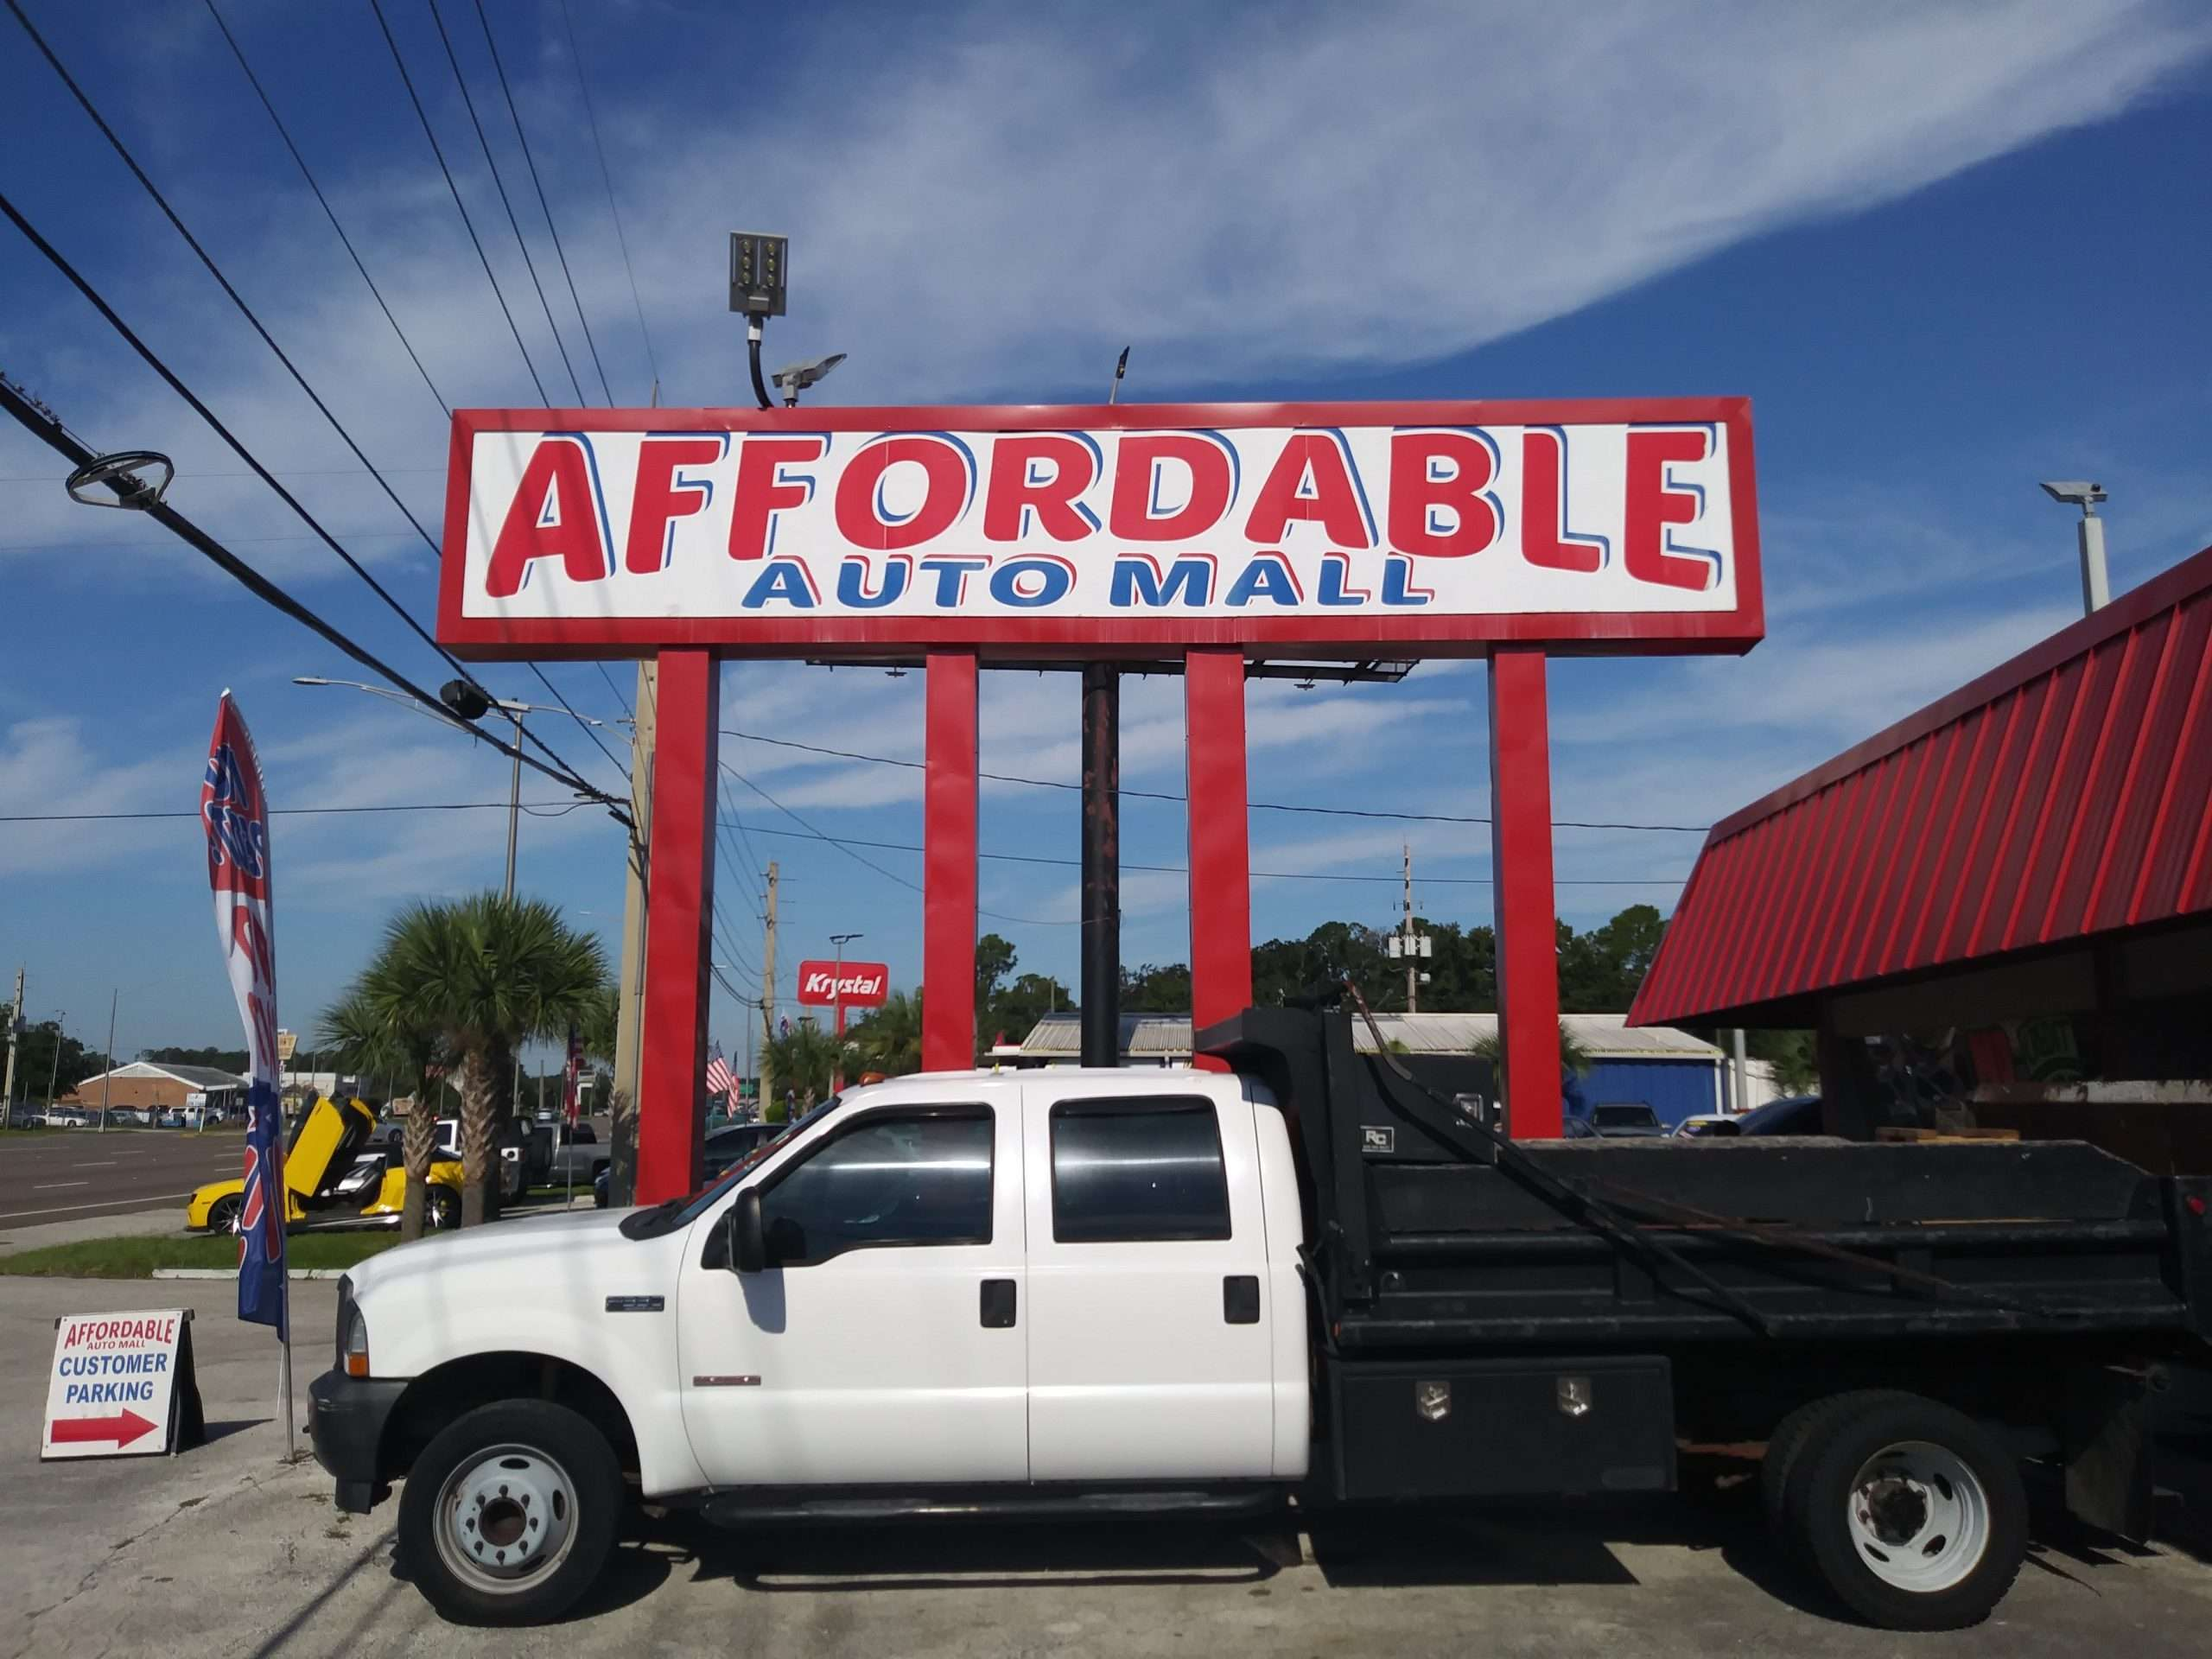 Affordable Auto Mall Large Sign - Jacksonville Fl